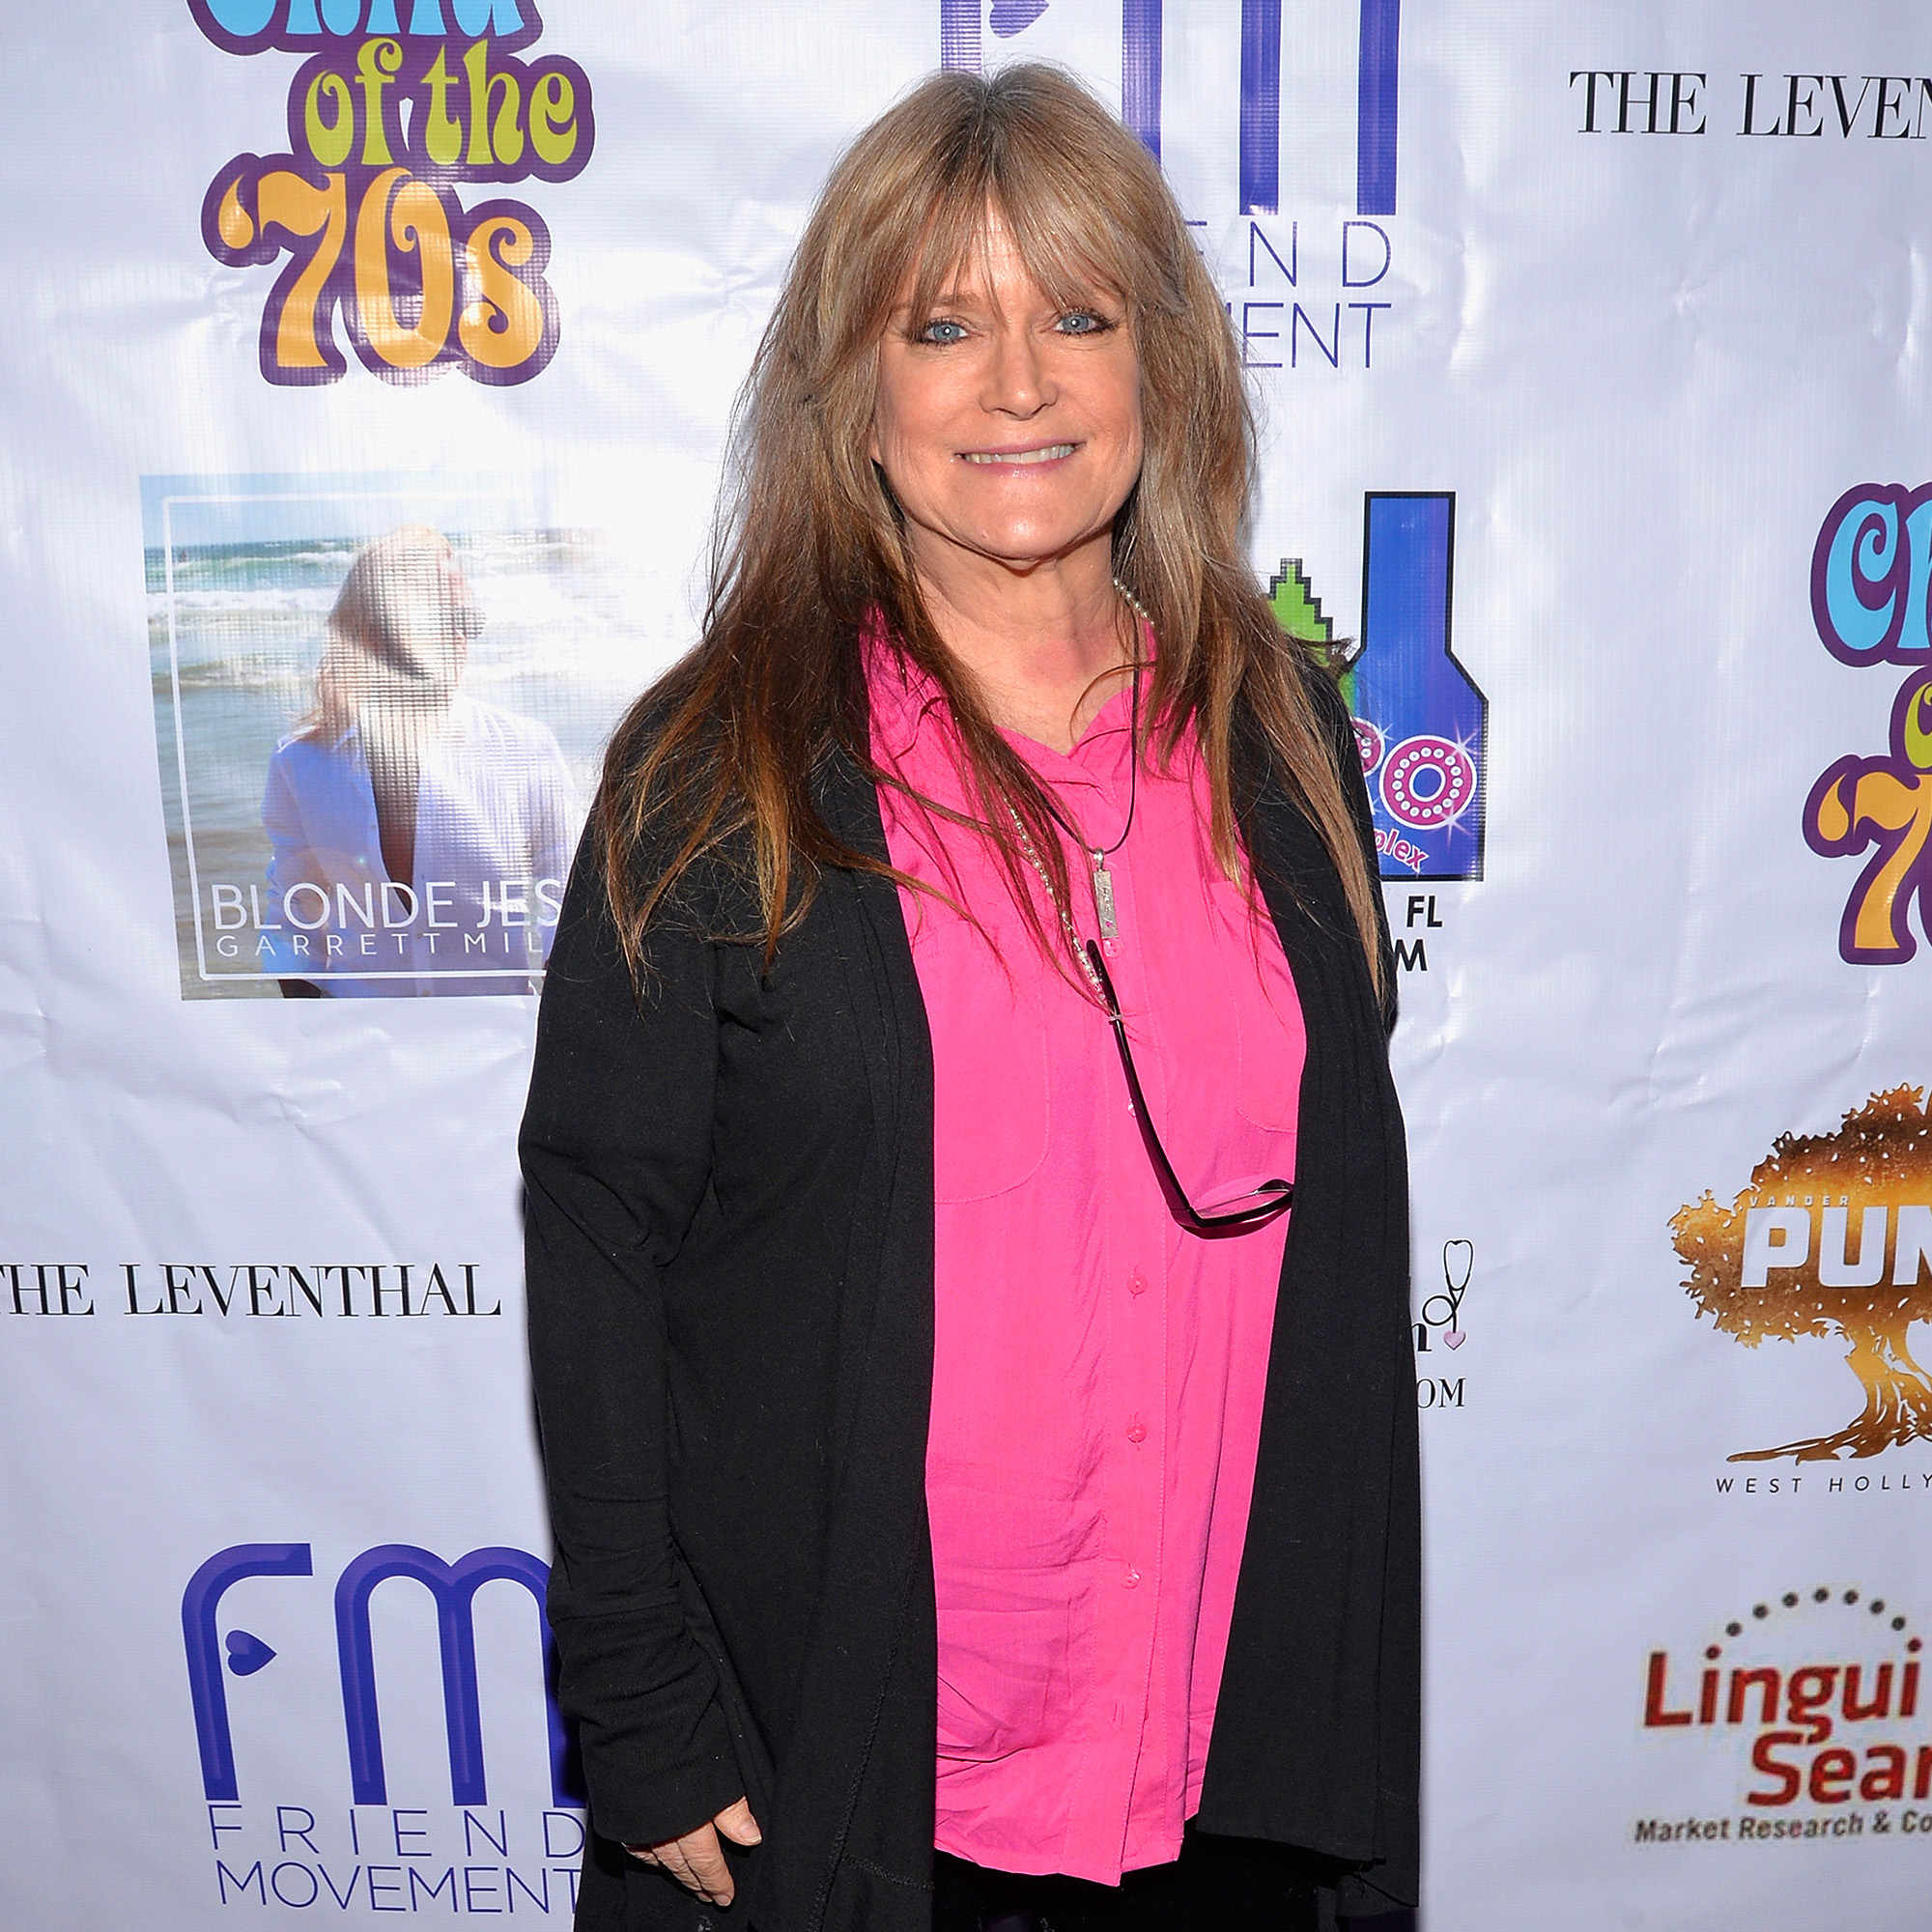 Susan Olsen attends an event in a pink colored dress and a black outer